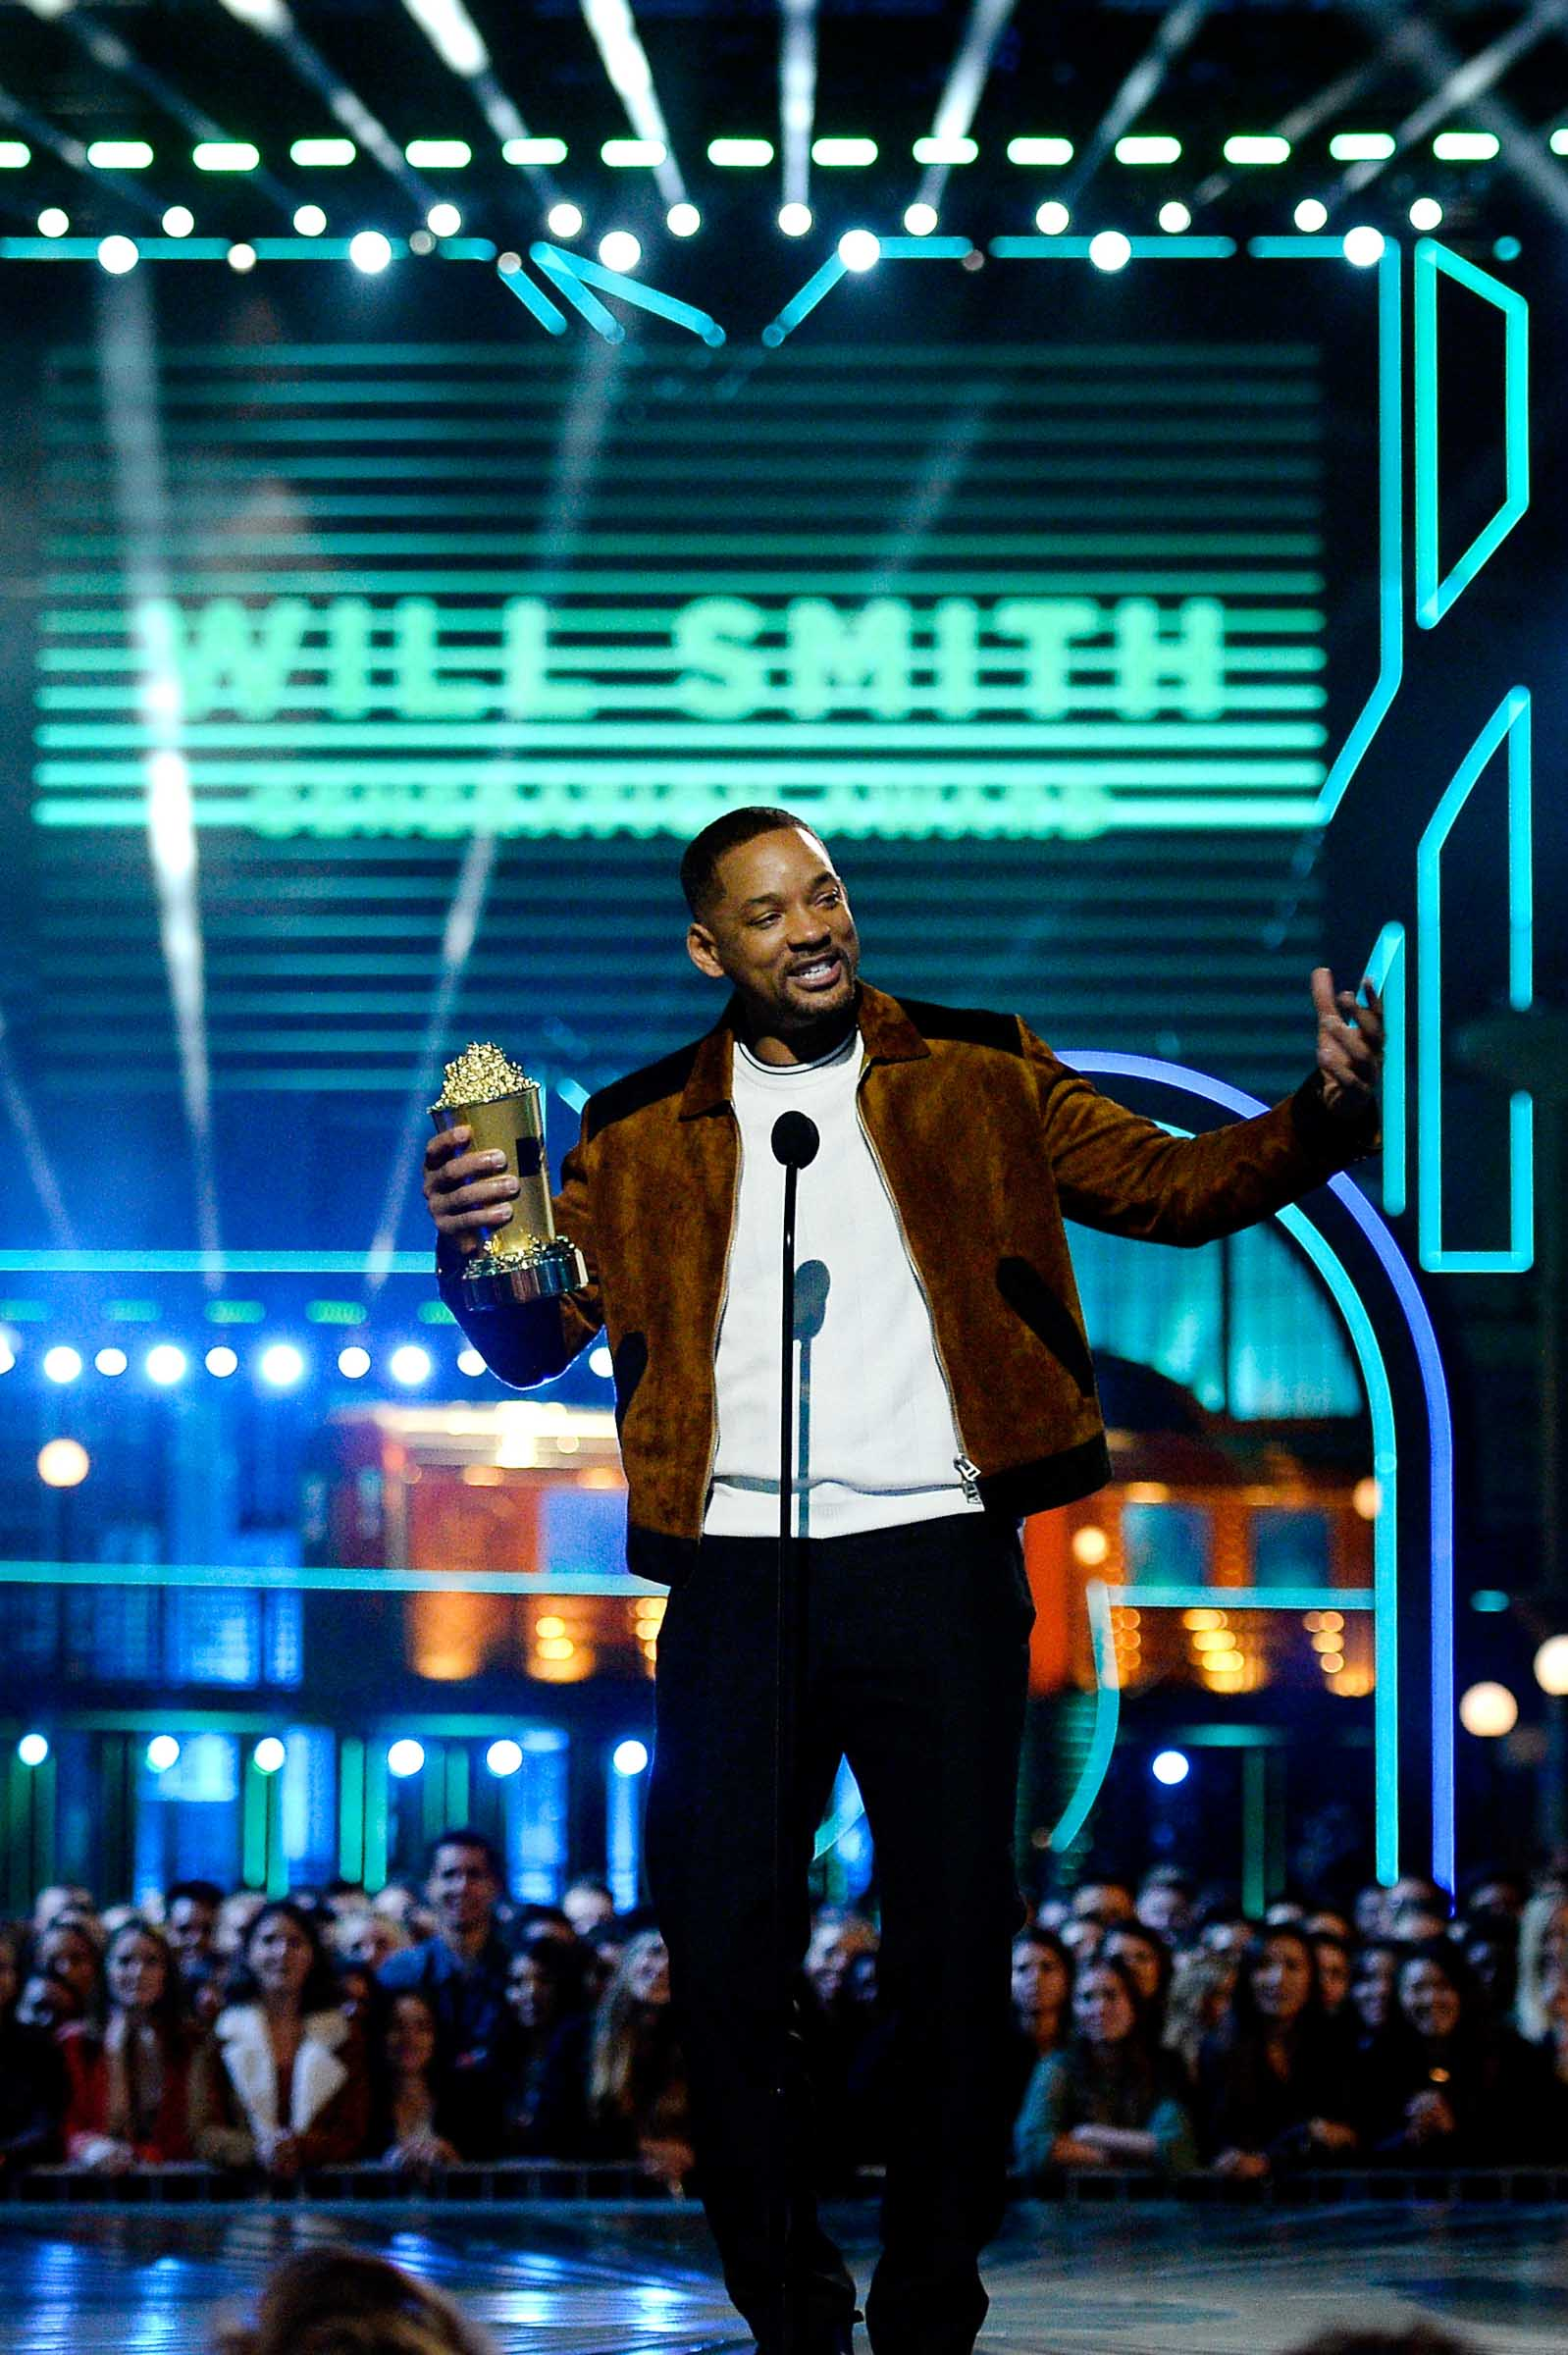 """BURBANK, CALIFORNIA - APRIL 09:  Actor Will Smith accepts the MTV Generation Award onstage during the 2016 MTV Movie Awards at Warner Bros. Studios on April 9, 2016 in Burbank, California.  MTV Movie Awards airs April 10, 2016 at 8pm ET/PT.  (Photo by Kevork Djansezian/Getty Images)"""